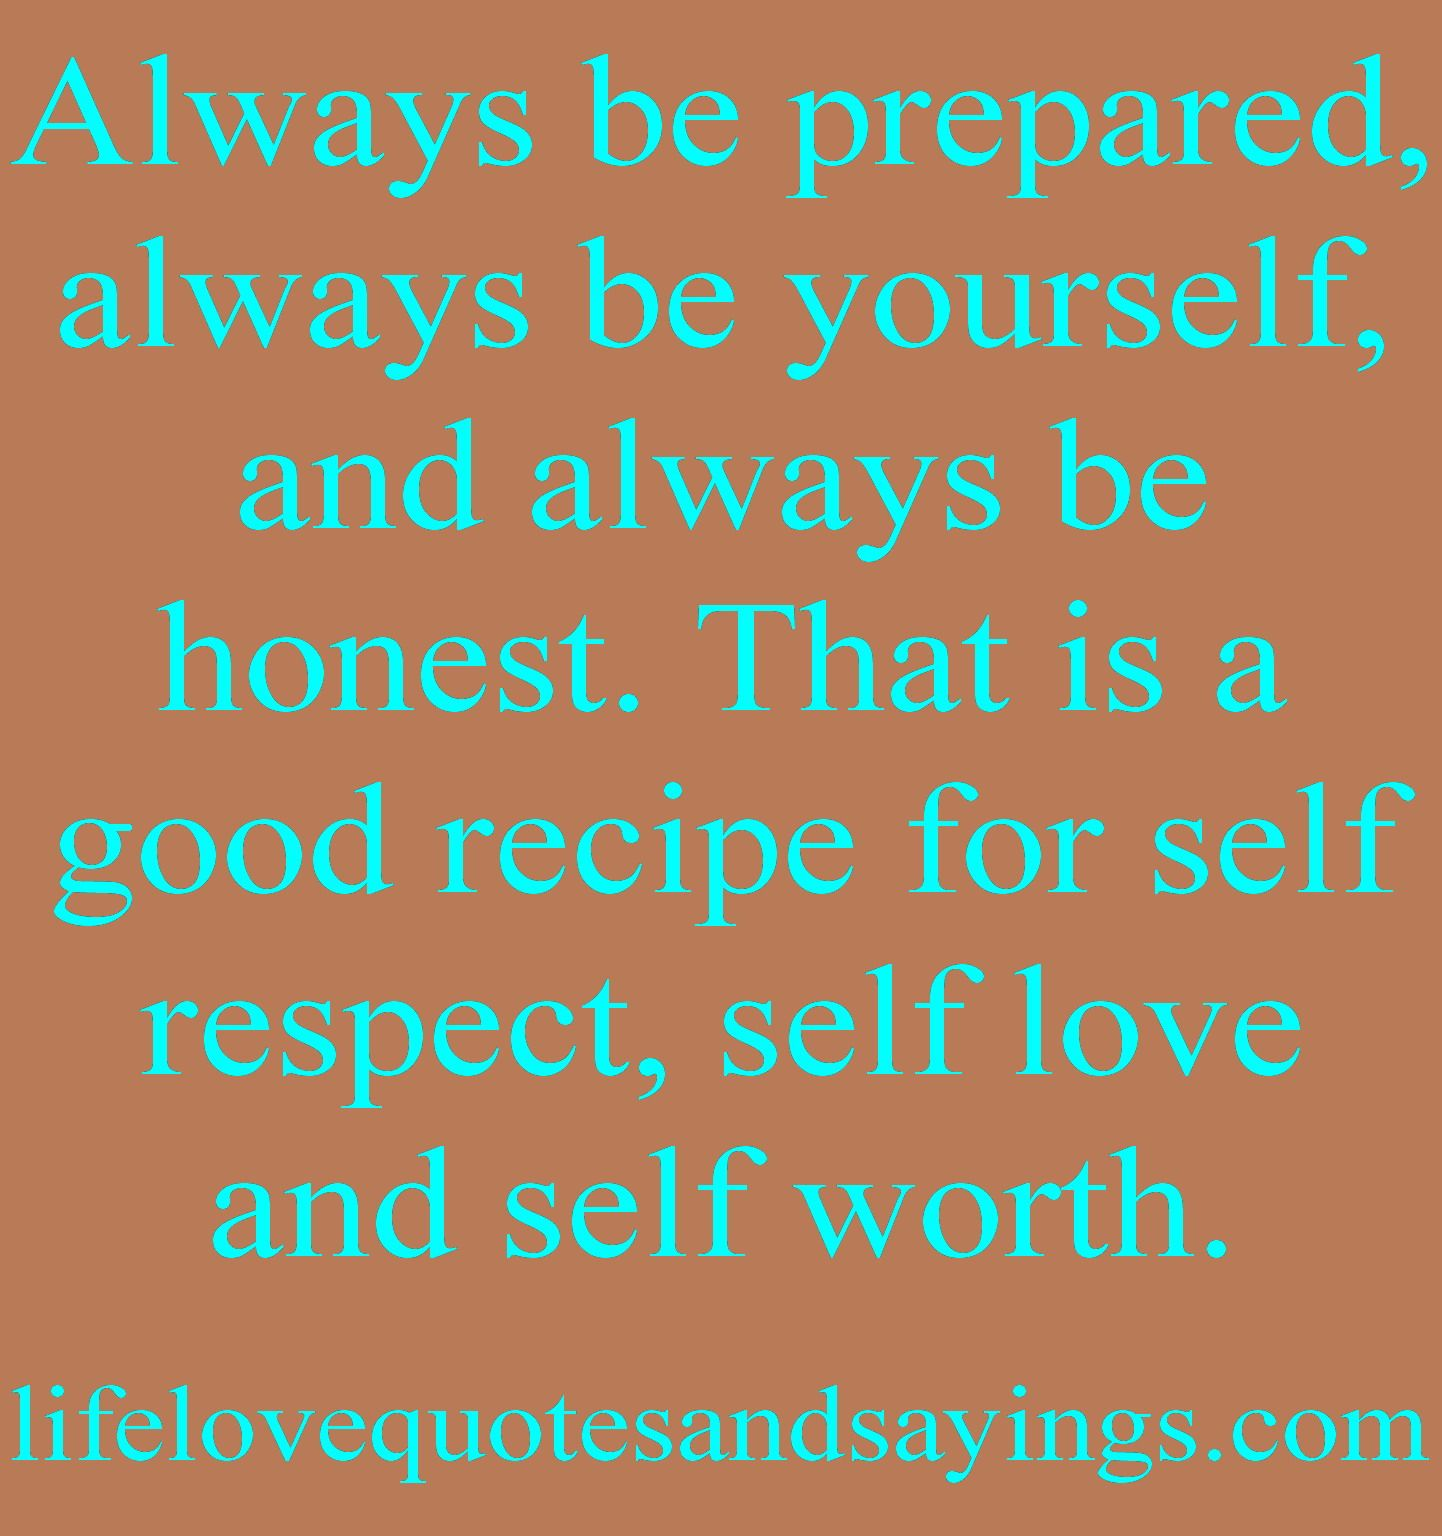 Love And Respect Quotes Self Respectself Worthself Love Genuine And Lasting Self